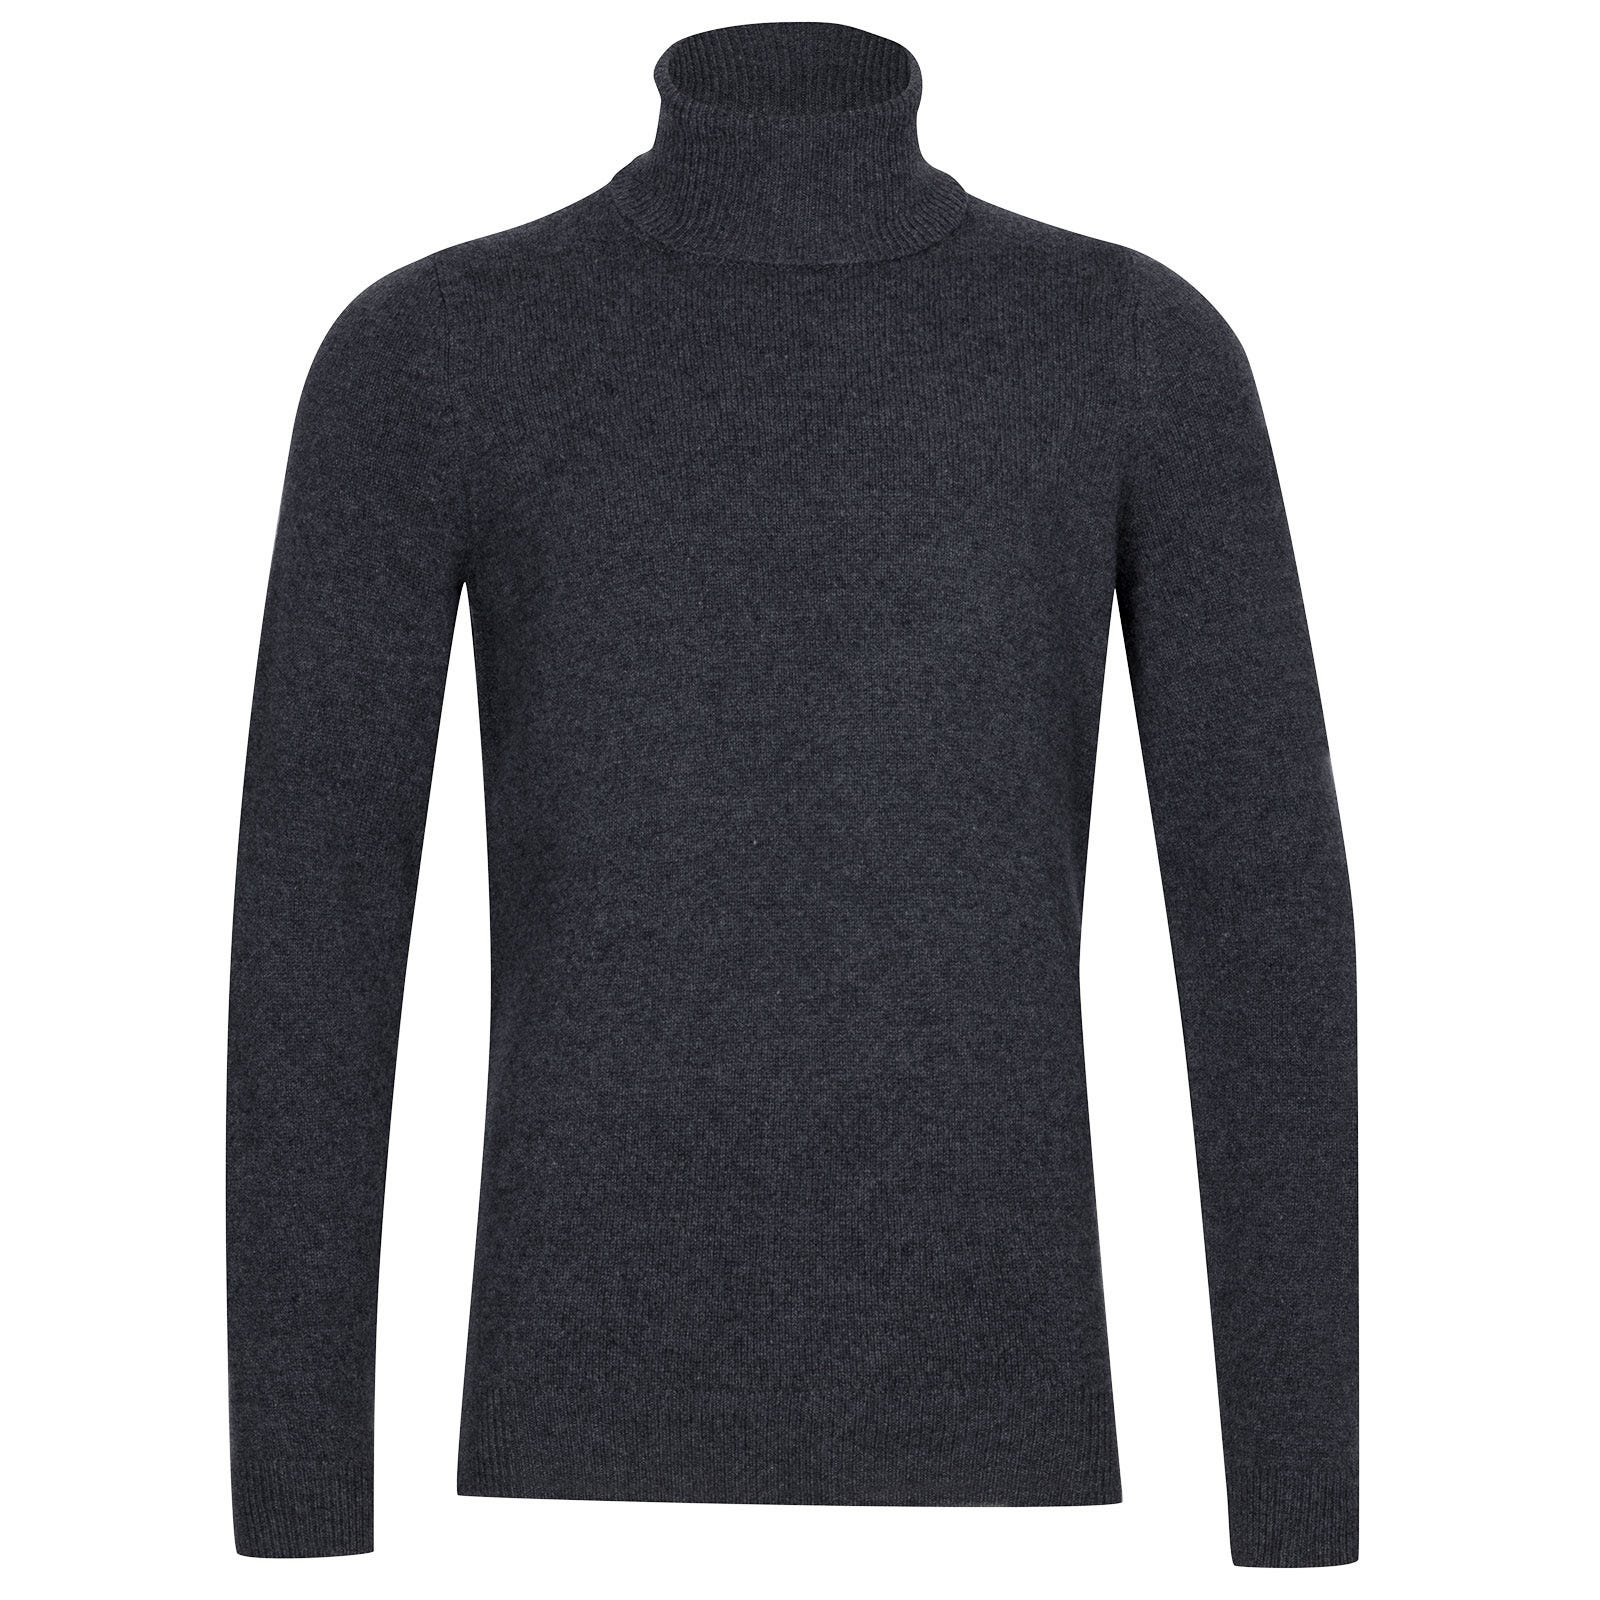 John Smedley Zachary Wool and Cashmere Pullover in Charcoal-XXL